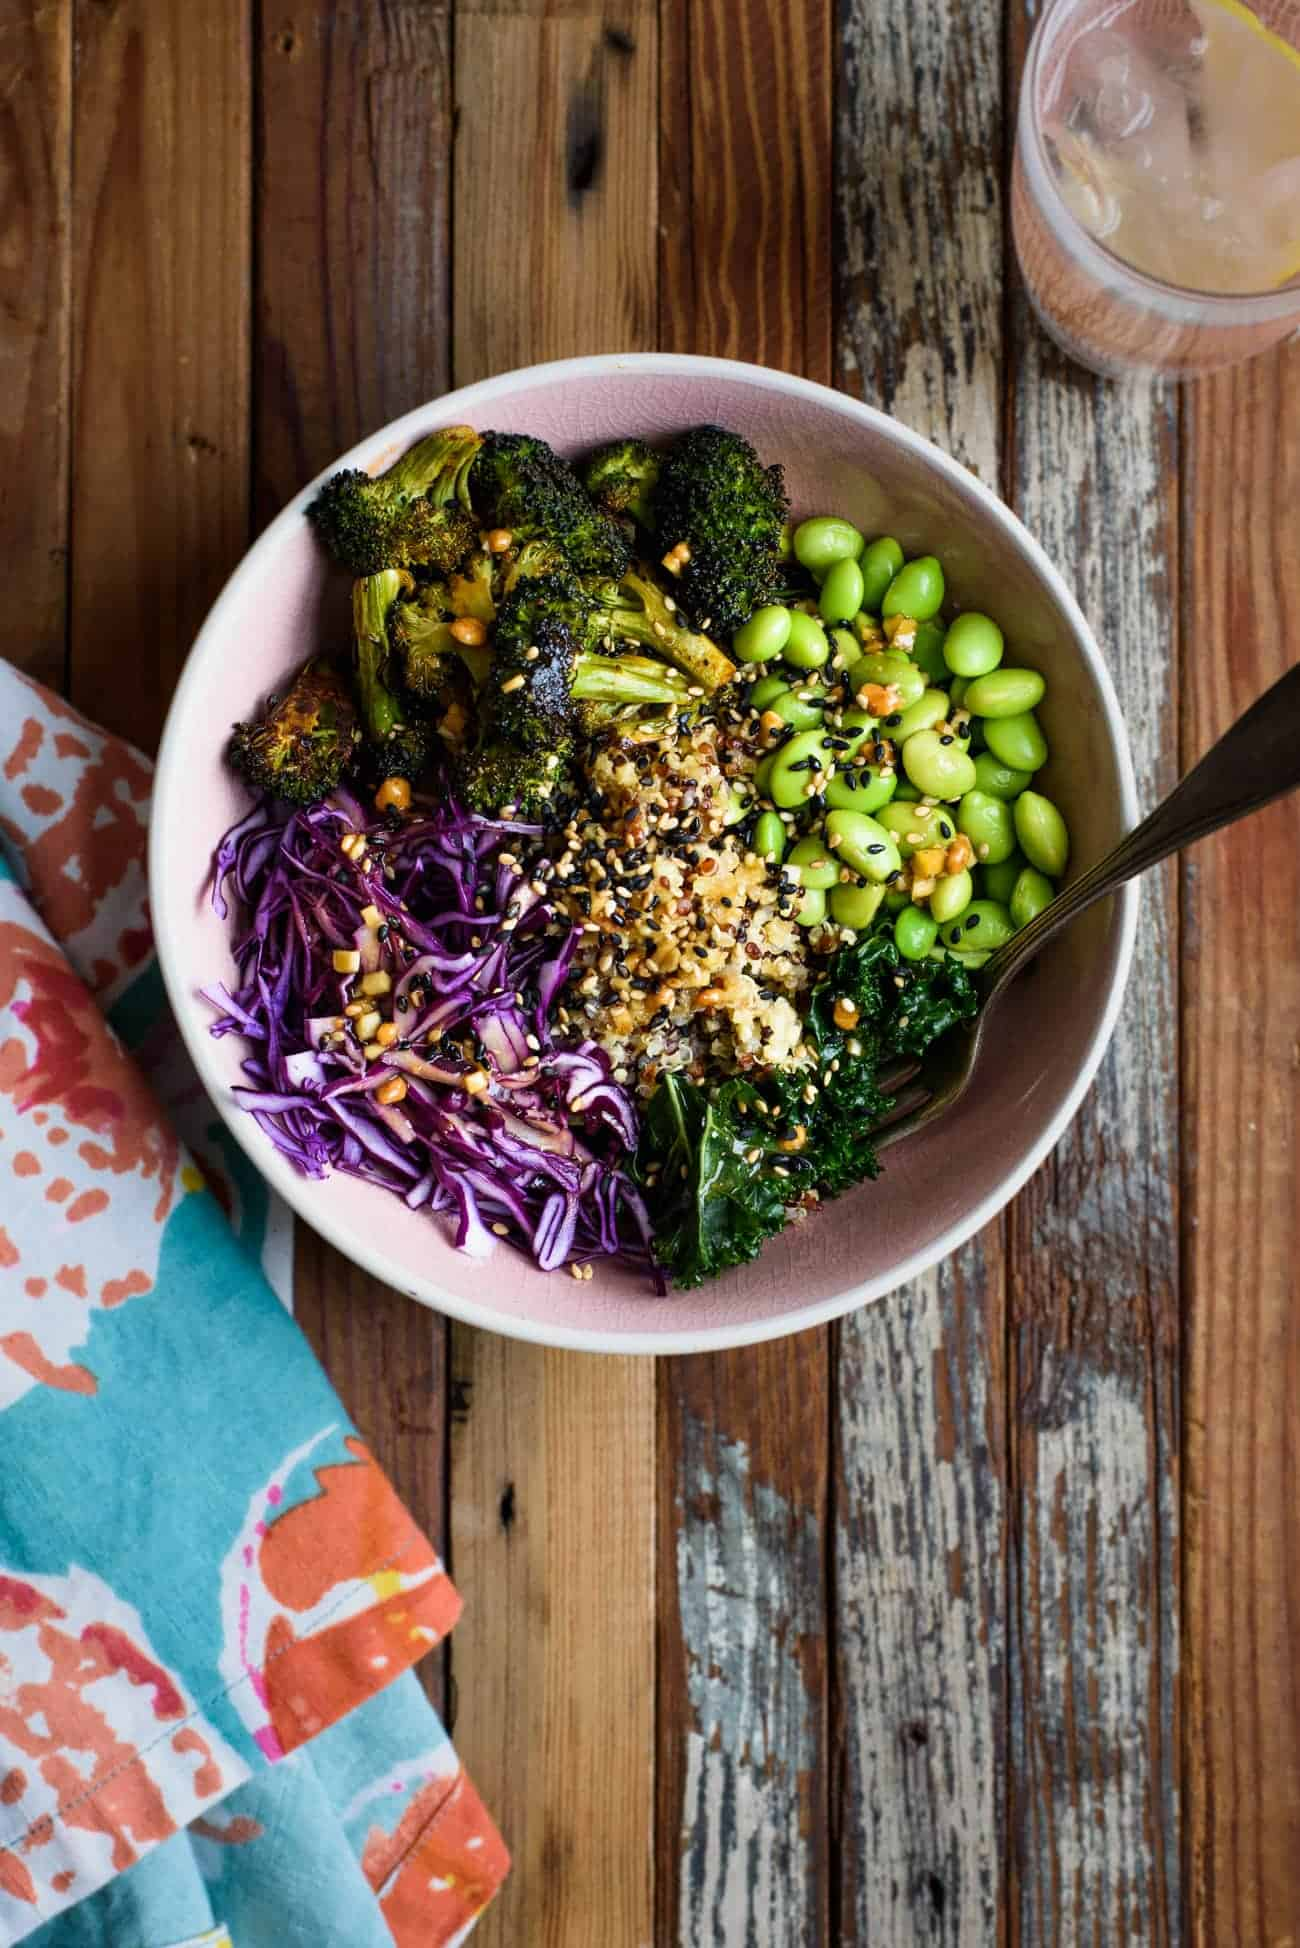 Vegan Asian-Style Grain Bowl with Quinoa, Broccoli and Sesame Ginger Sauce